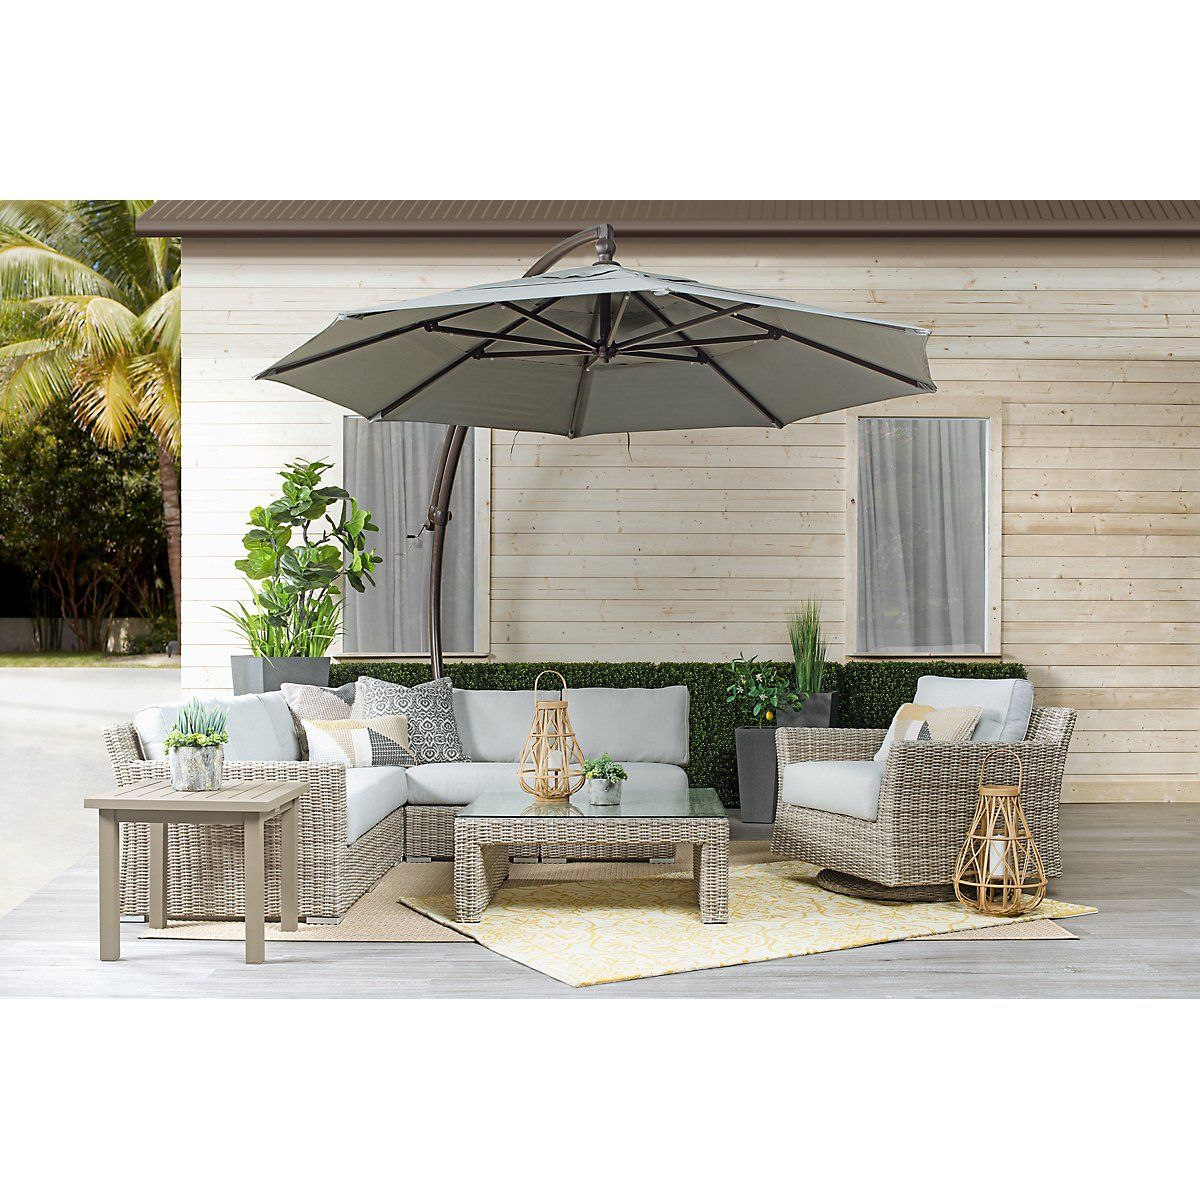 Cayman Gray Cantilever Umbrella Set Modular Sectional Outdoor